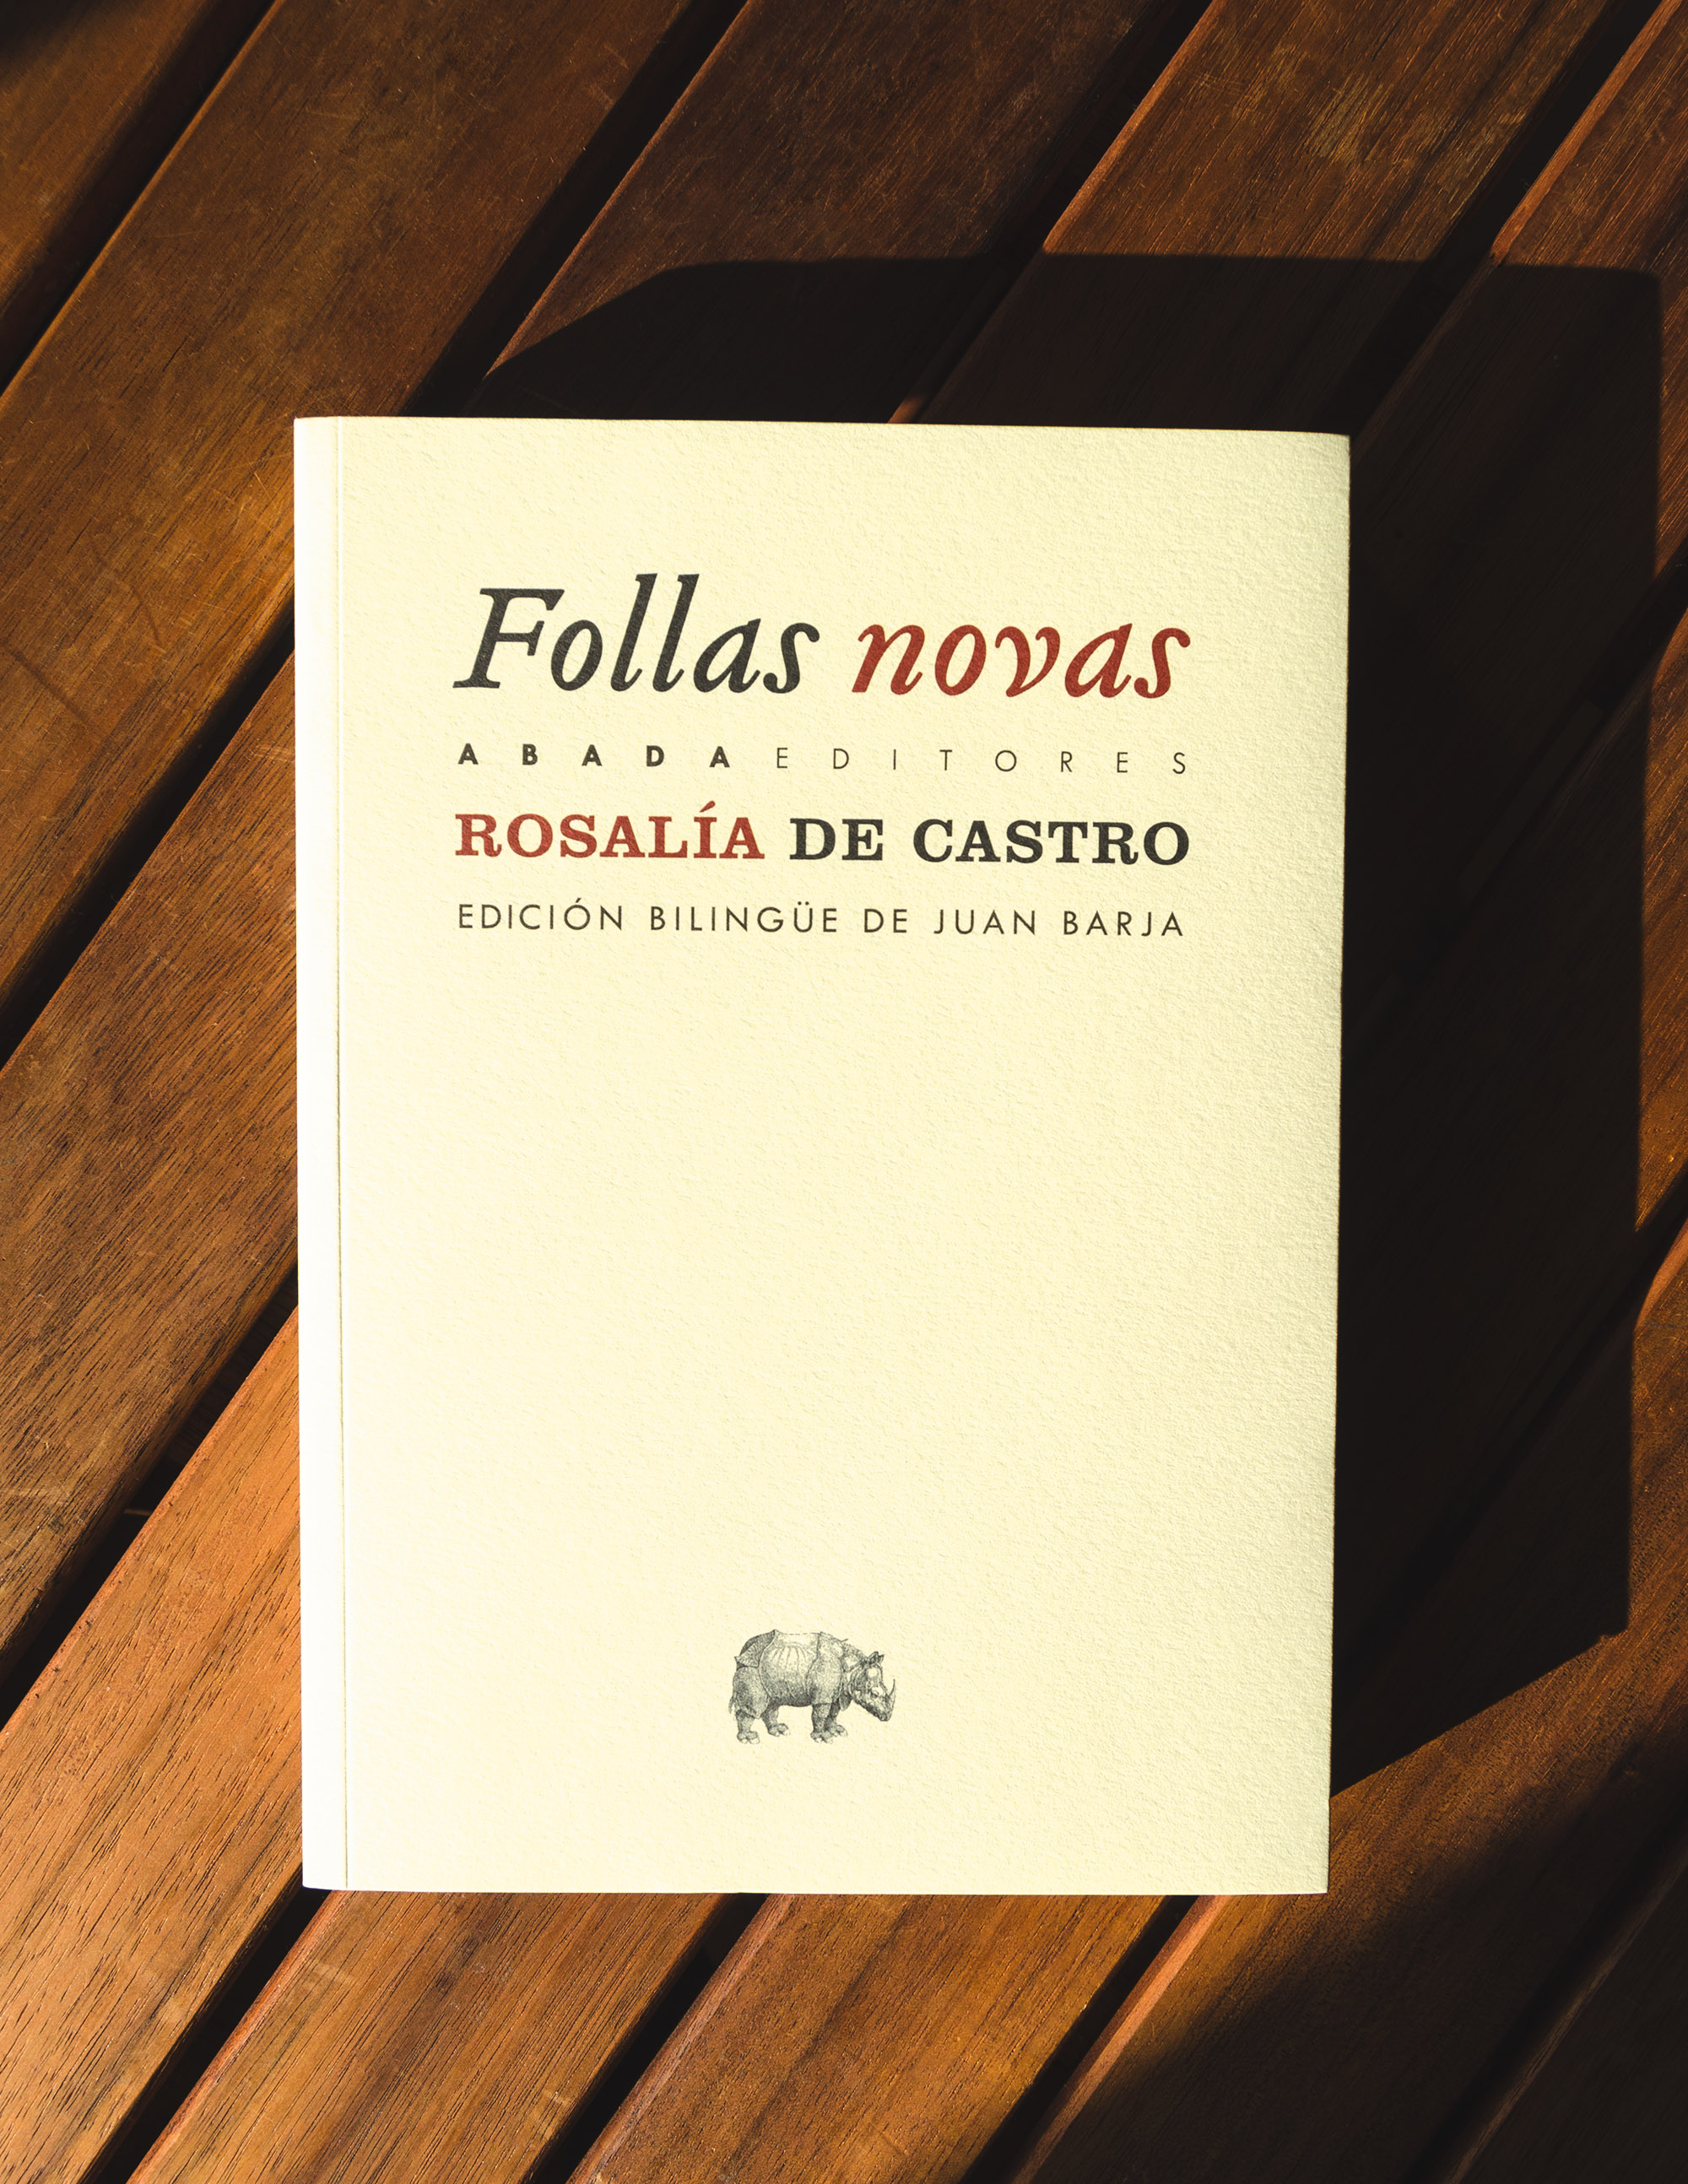 Libro follas novas bilingue - Kathedra